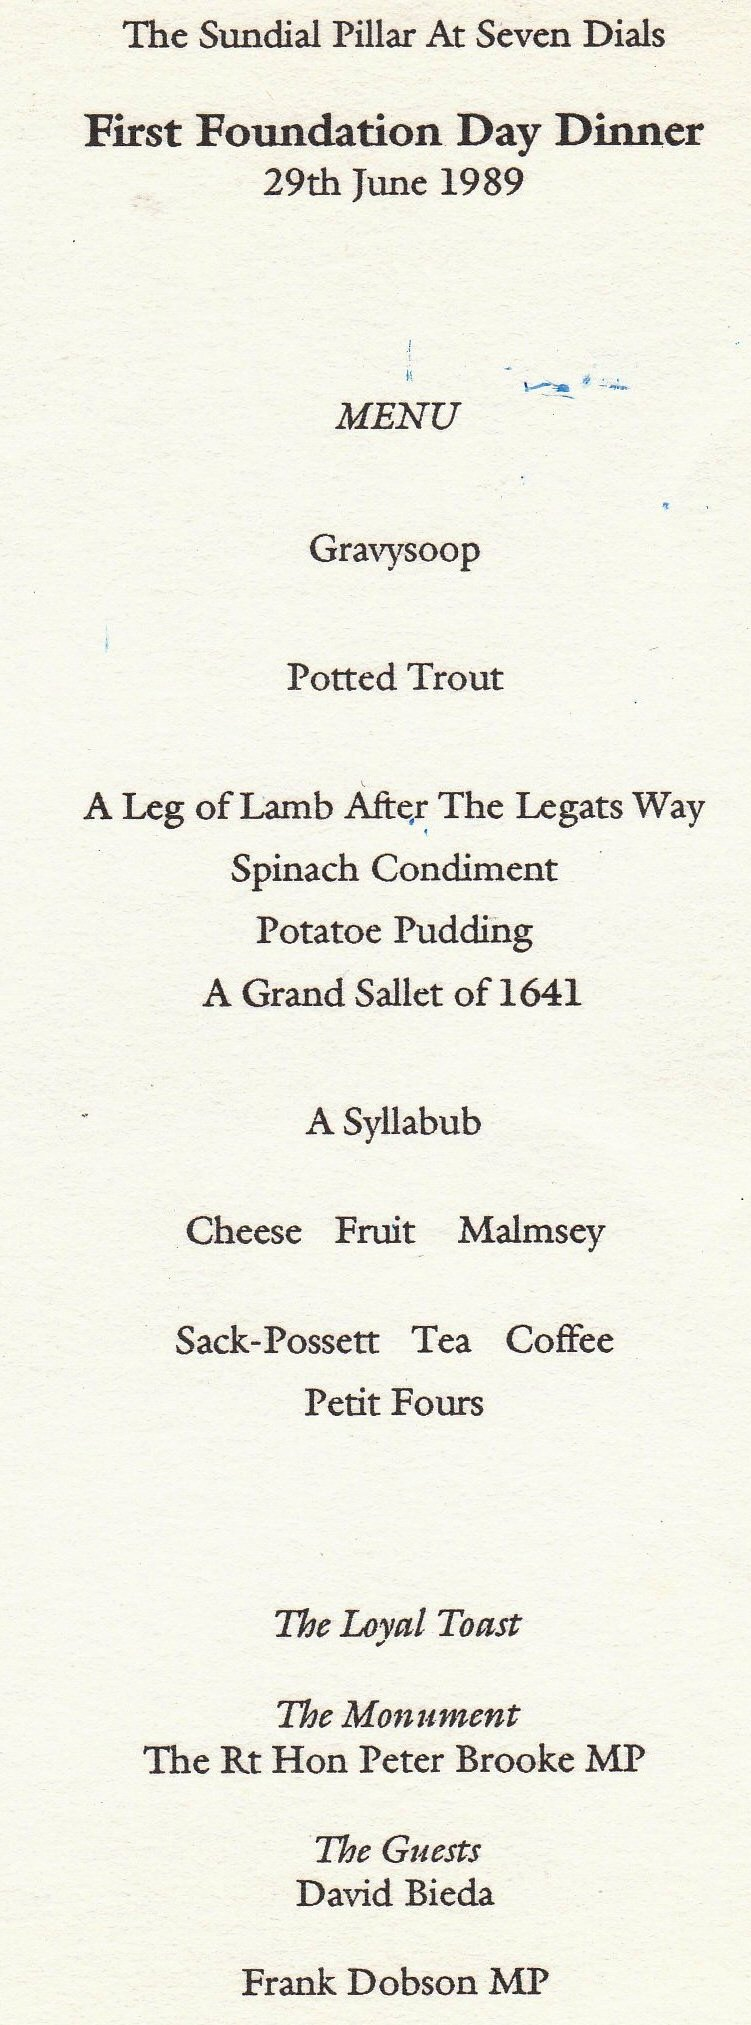 Foundation Dinner, Eighteenth century menu and order.